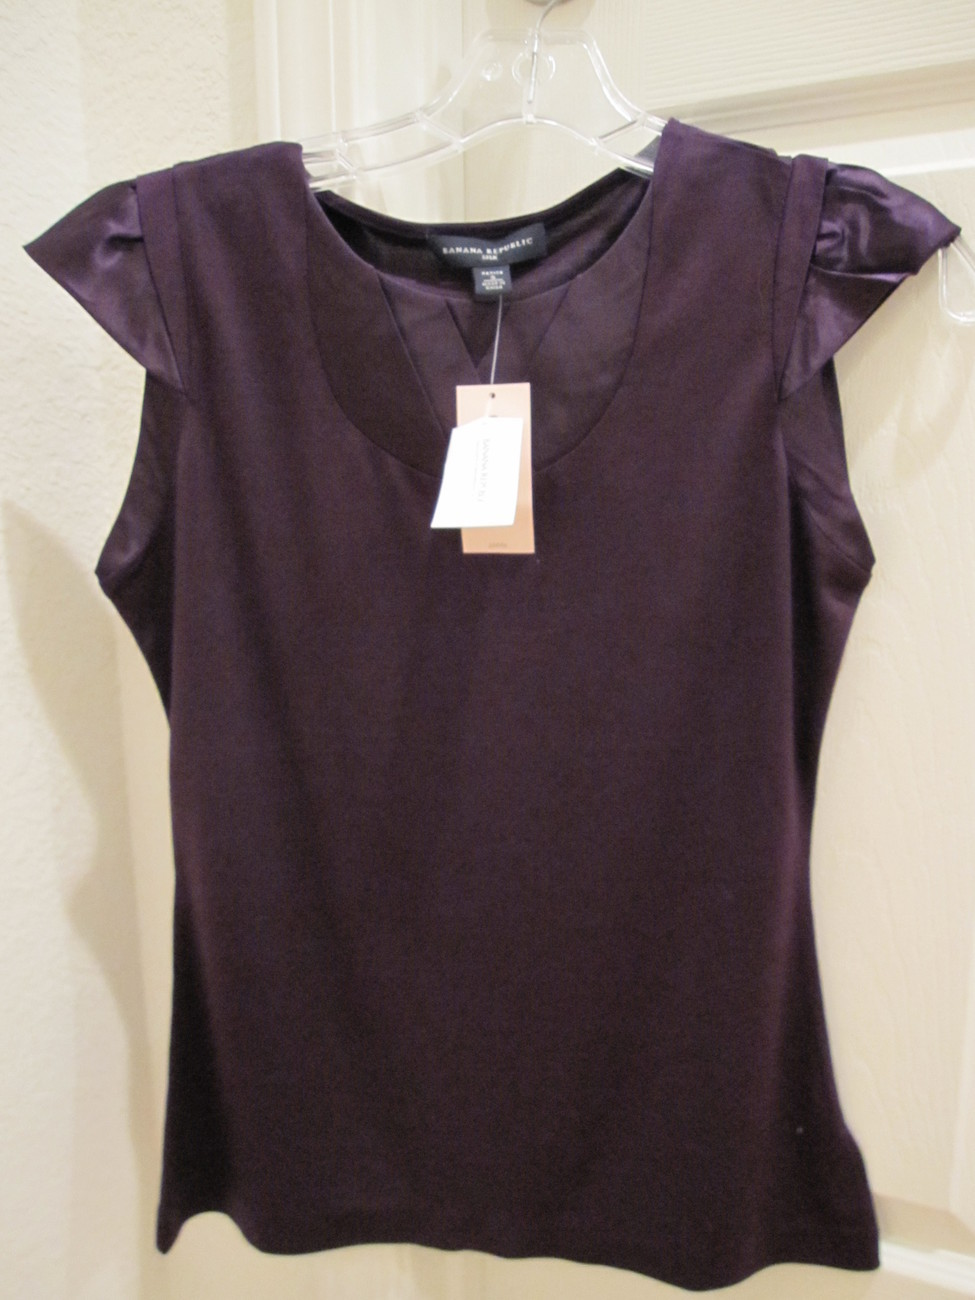 NWT Banana Republic Top - small petite Banana Republic